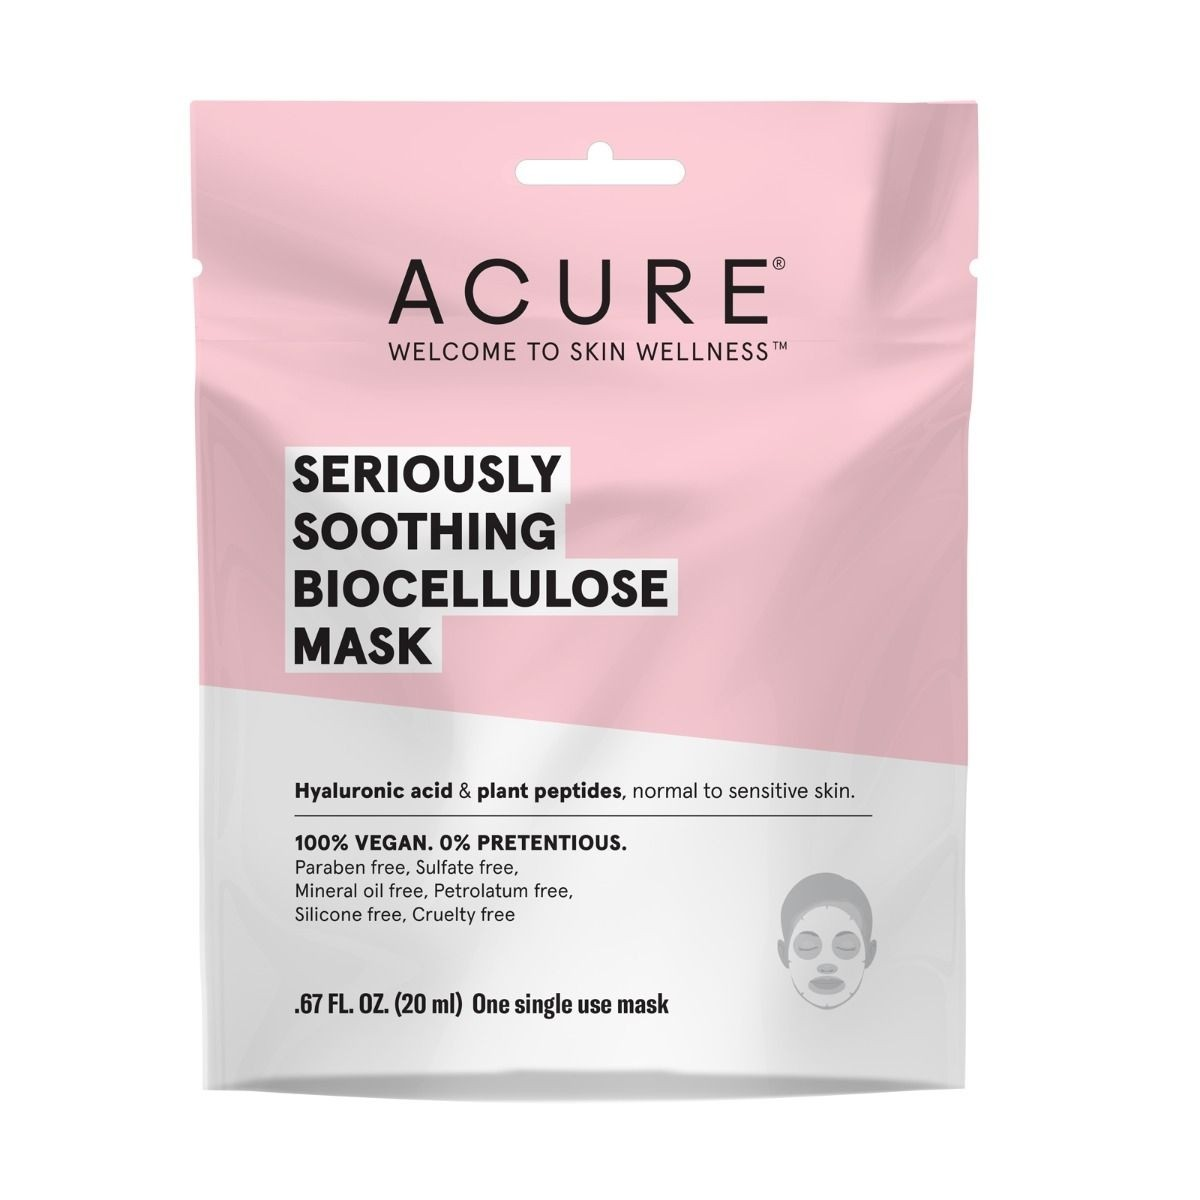 Acure Seriously Soothing Biocellulose Mask - 20ml